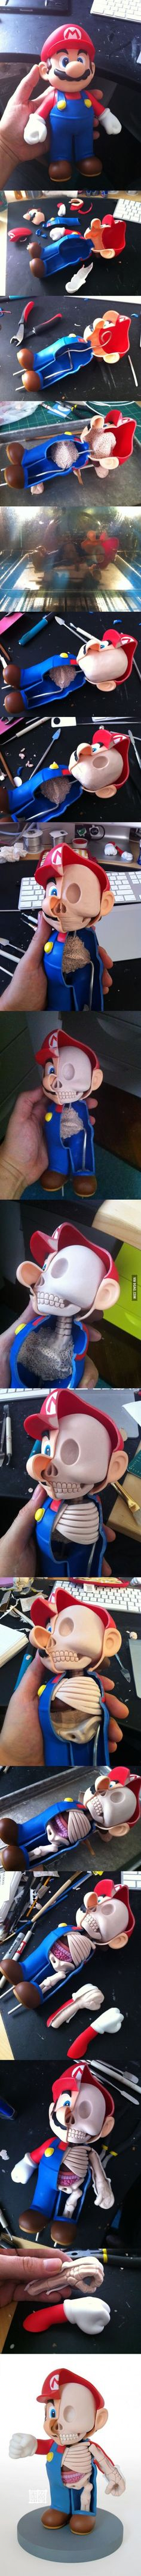 Dissection of Mario by artist Jason Freeny This is so awesome!!!!